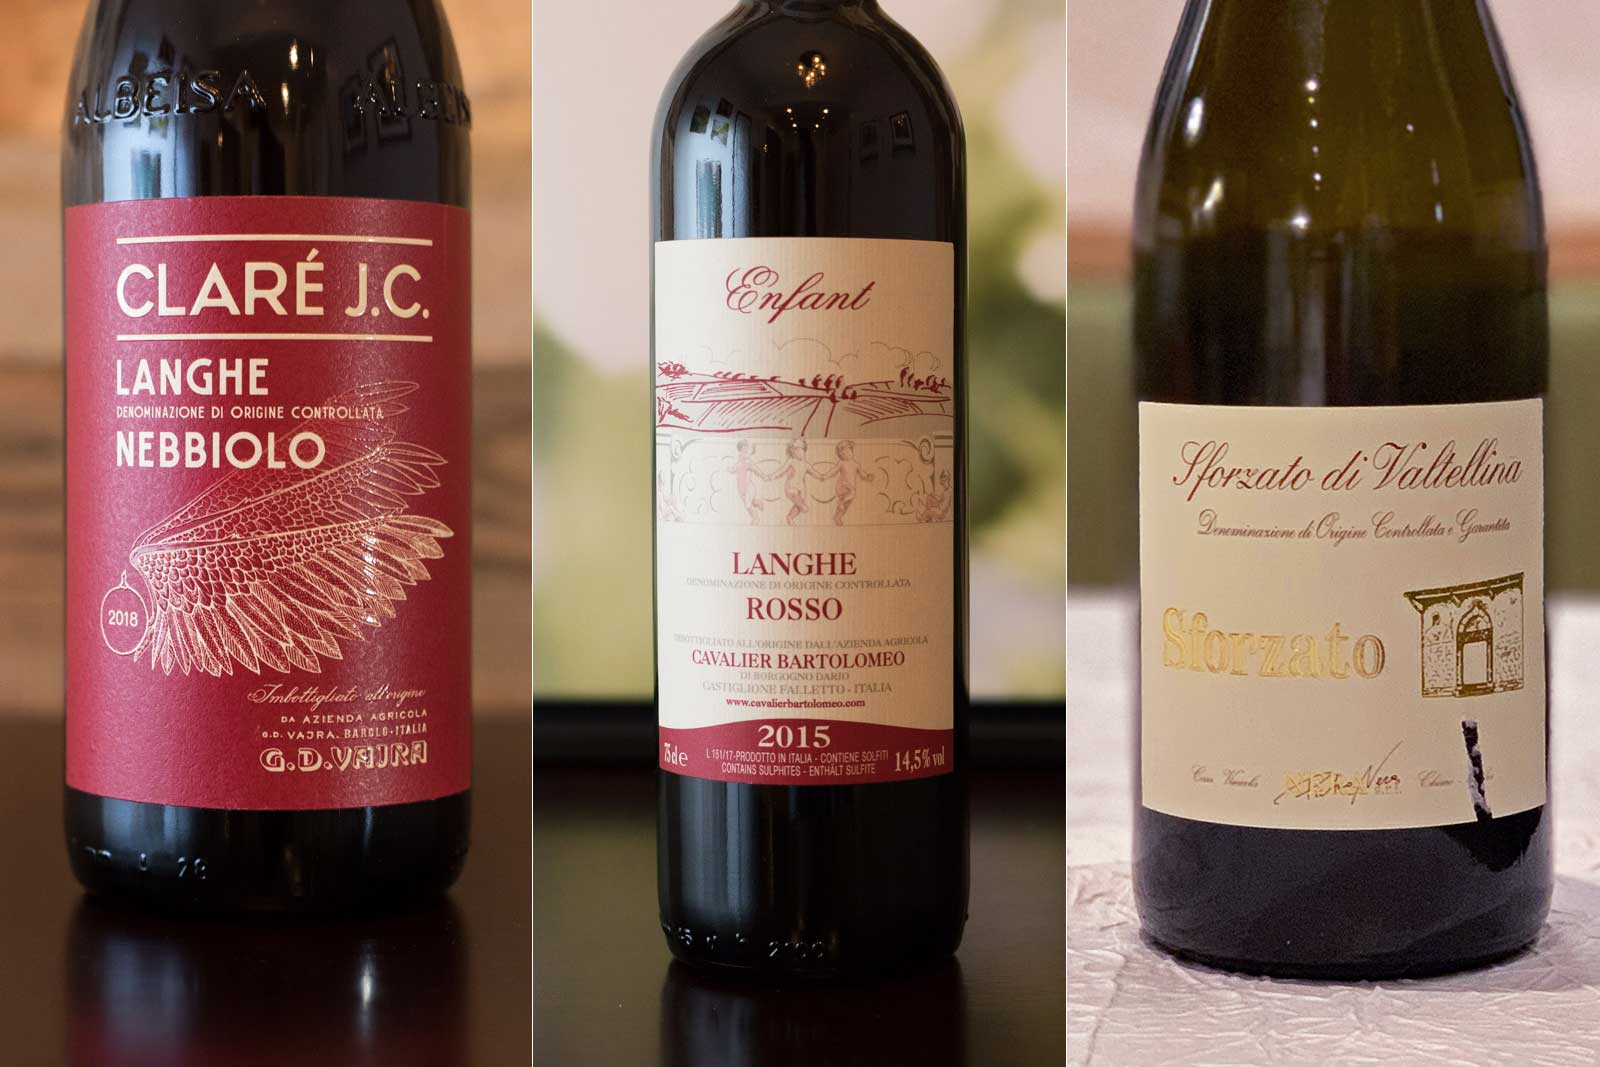 Nebbiolo wines of different vinification styles from GD Vajra, Cavalier Bartolomeo and Pietro Nera ©Kevin Day/Opening a Bottle